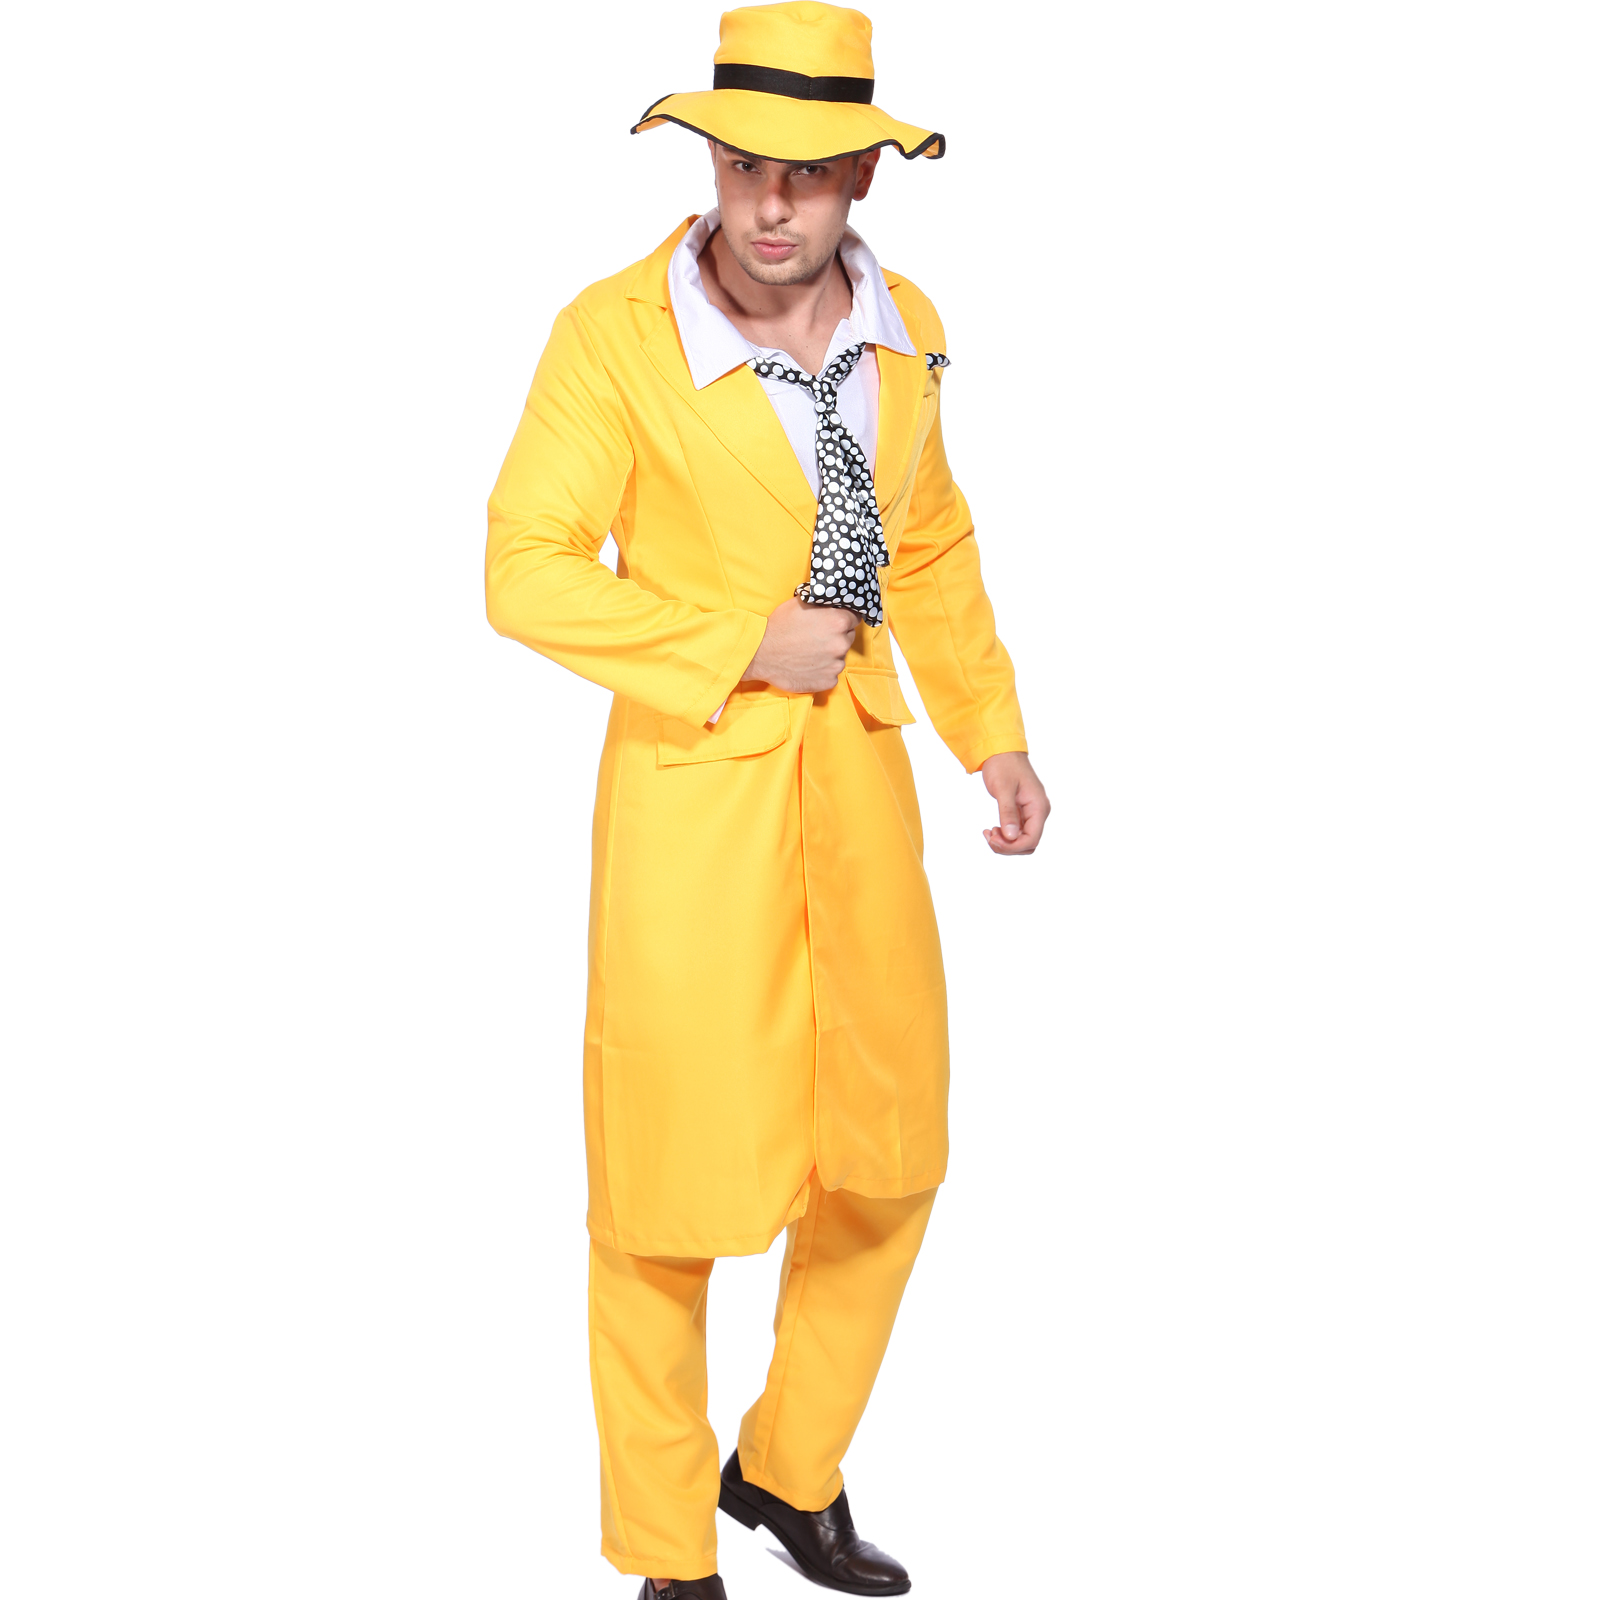 Mens The Mask Jim Carrey Costume Yellow Gangster Zoot Suit  sc 1 st  Meningrey & The Mask Costume Kids - Meningrey